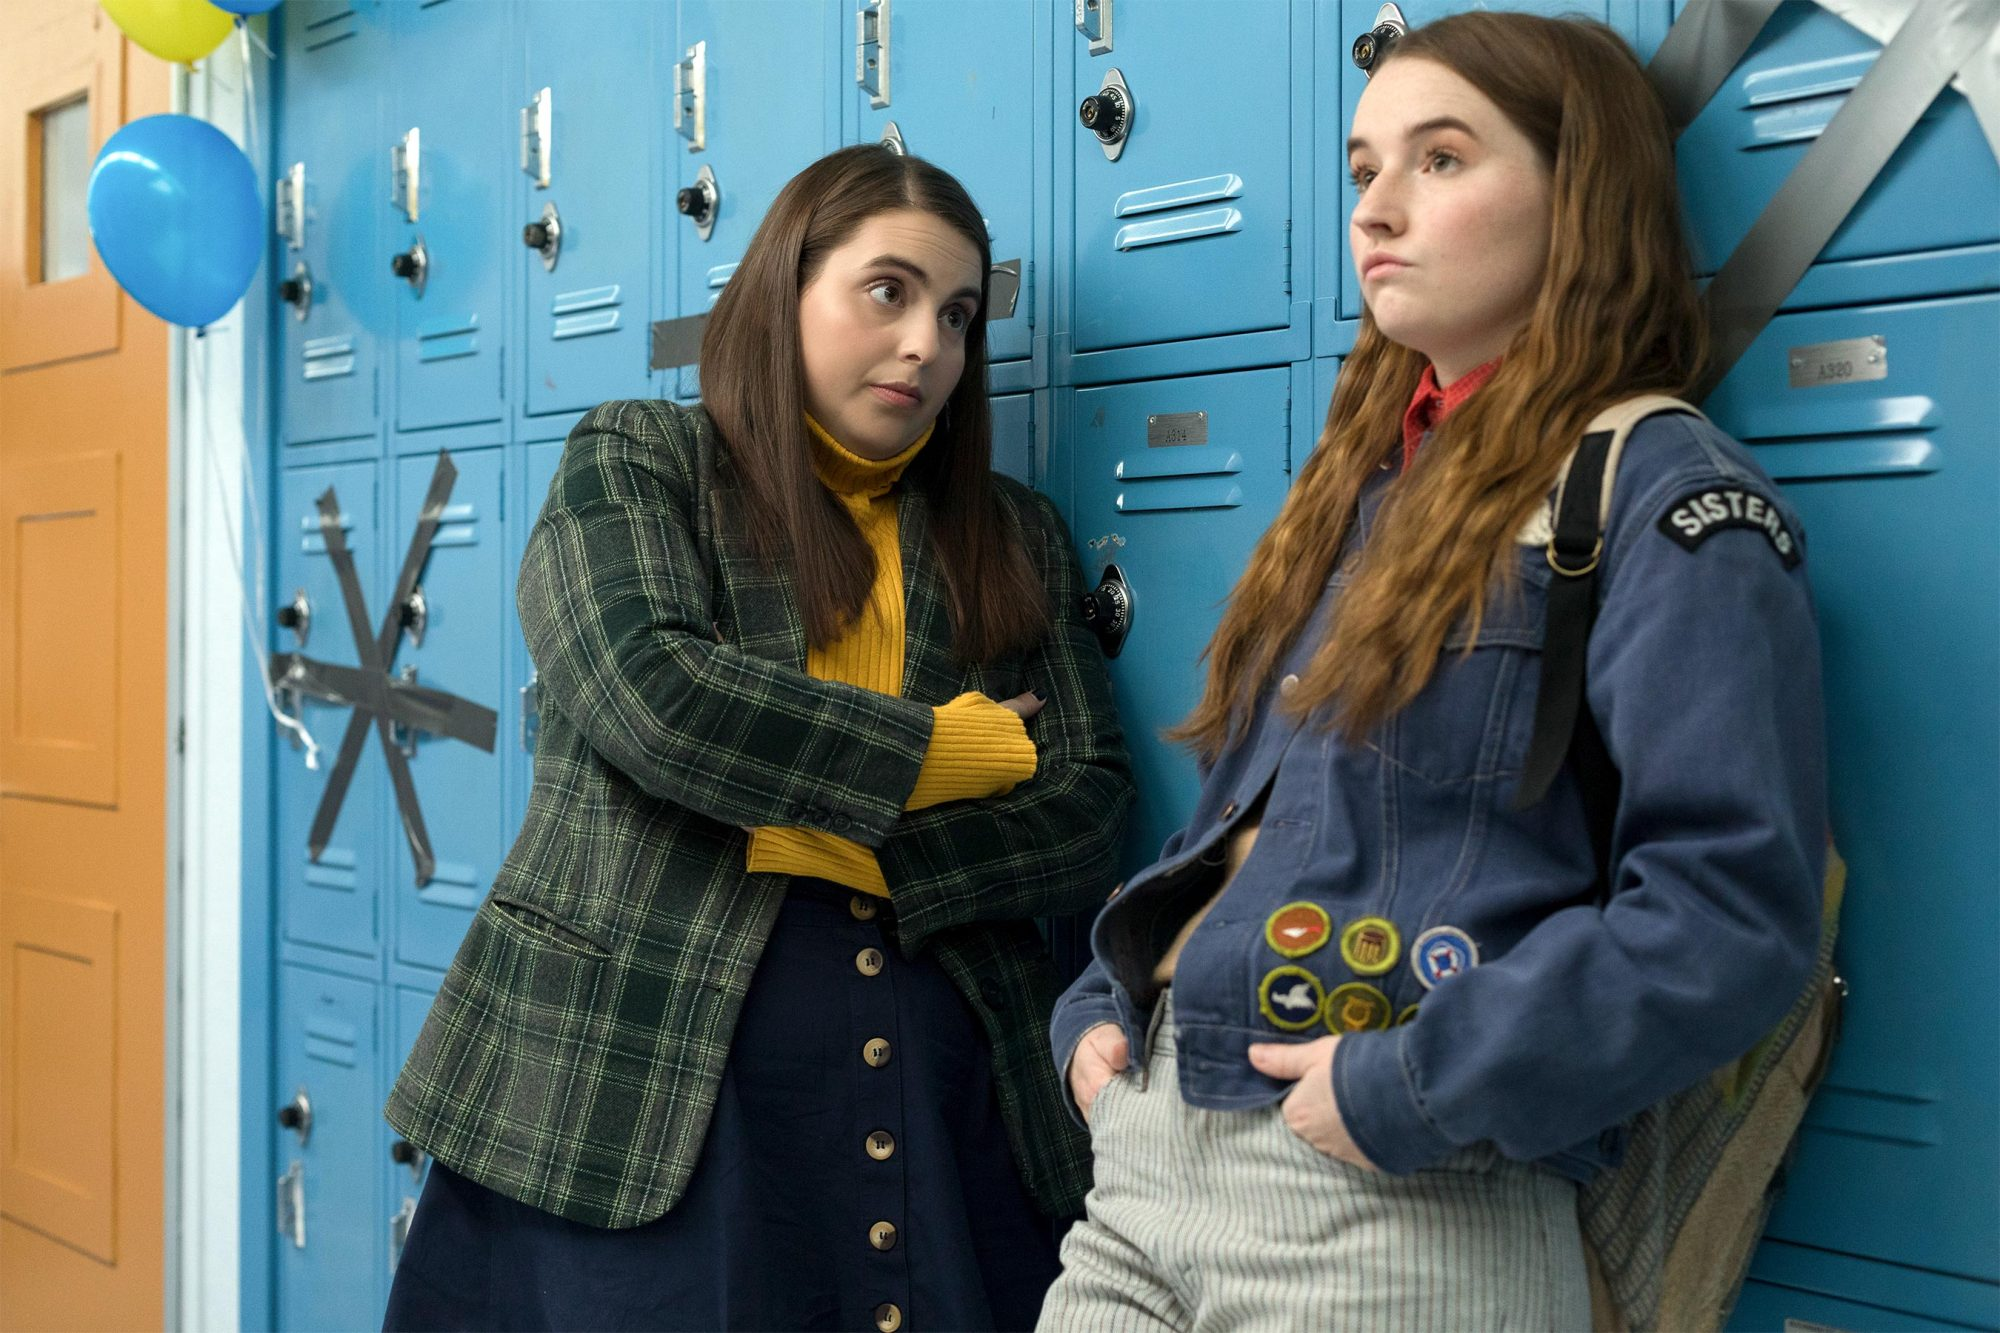 BOOKSMART Beanie Feldstein stars as Molly and Kaitlyn Dever as Amy in Olivia Wilde's directorial debut, BOOKSMART, an Annapurna Pictures release. Credit: Francois Duhamel / Annapurna Pictures